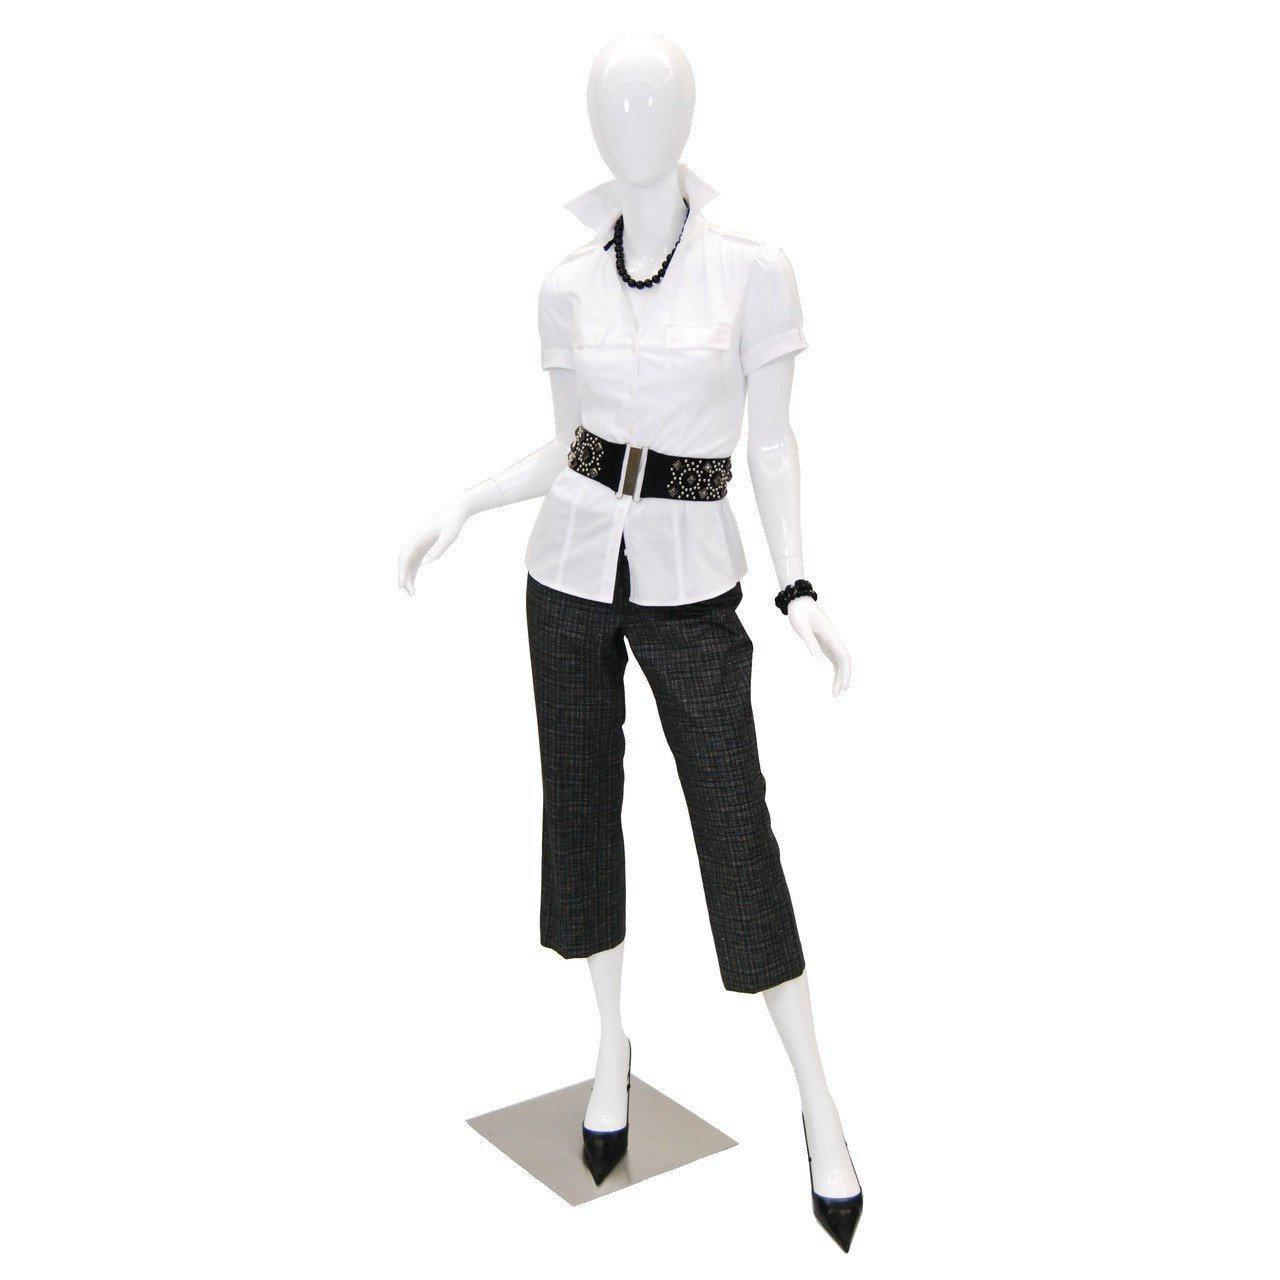 Mannequin Mall Abstract Female Mannequin MM-A2W1 For Fashion Stores and Retail Shops